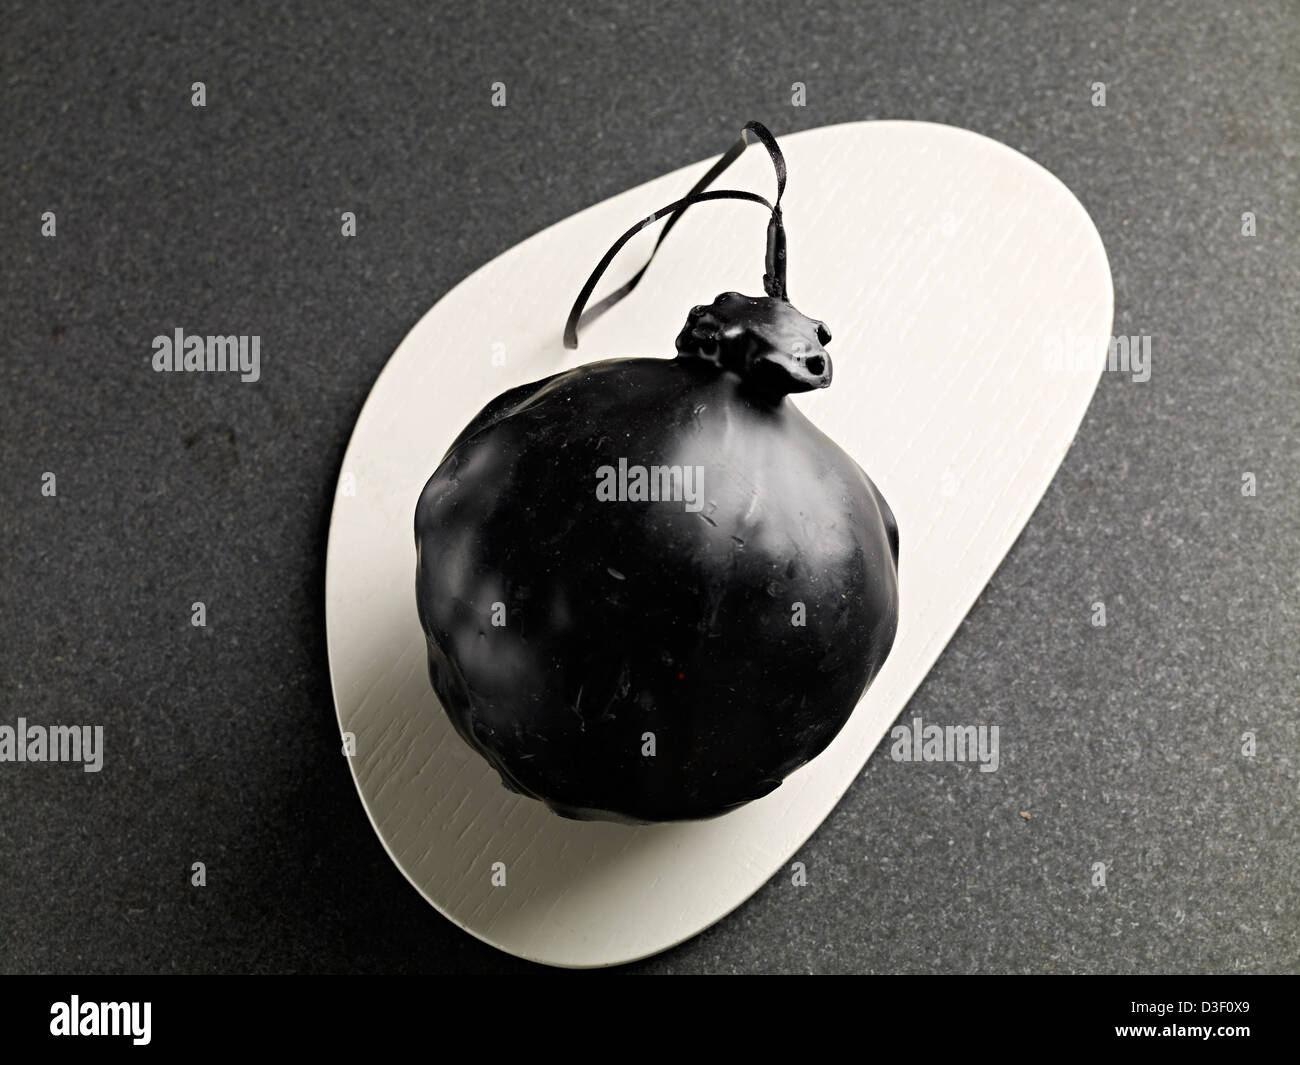 black wax covered cheese 'bomb' - Stock Image